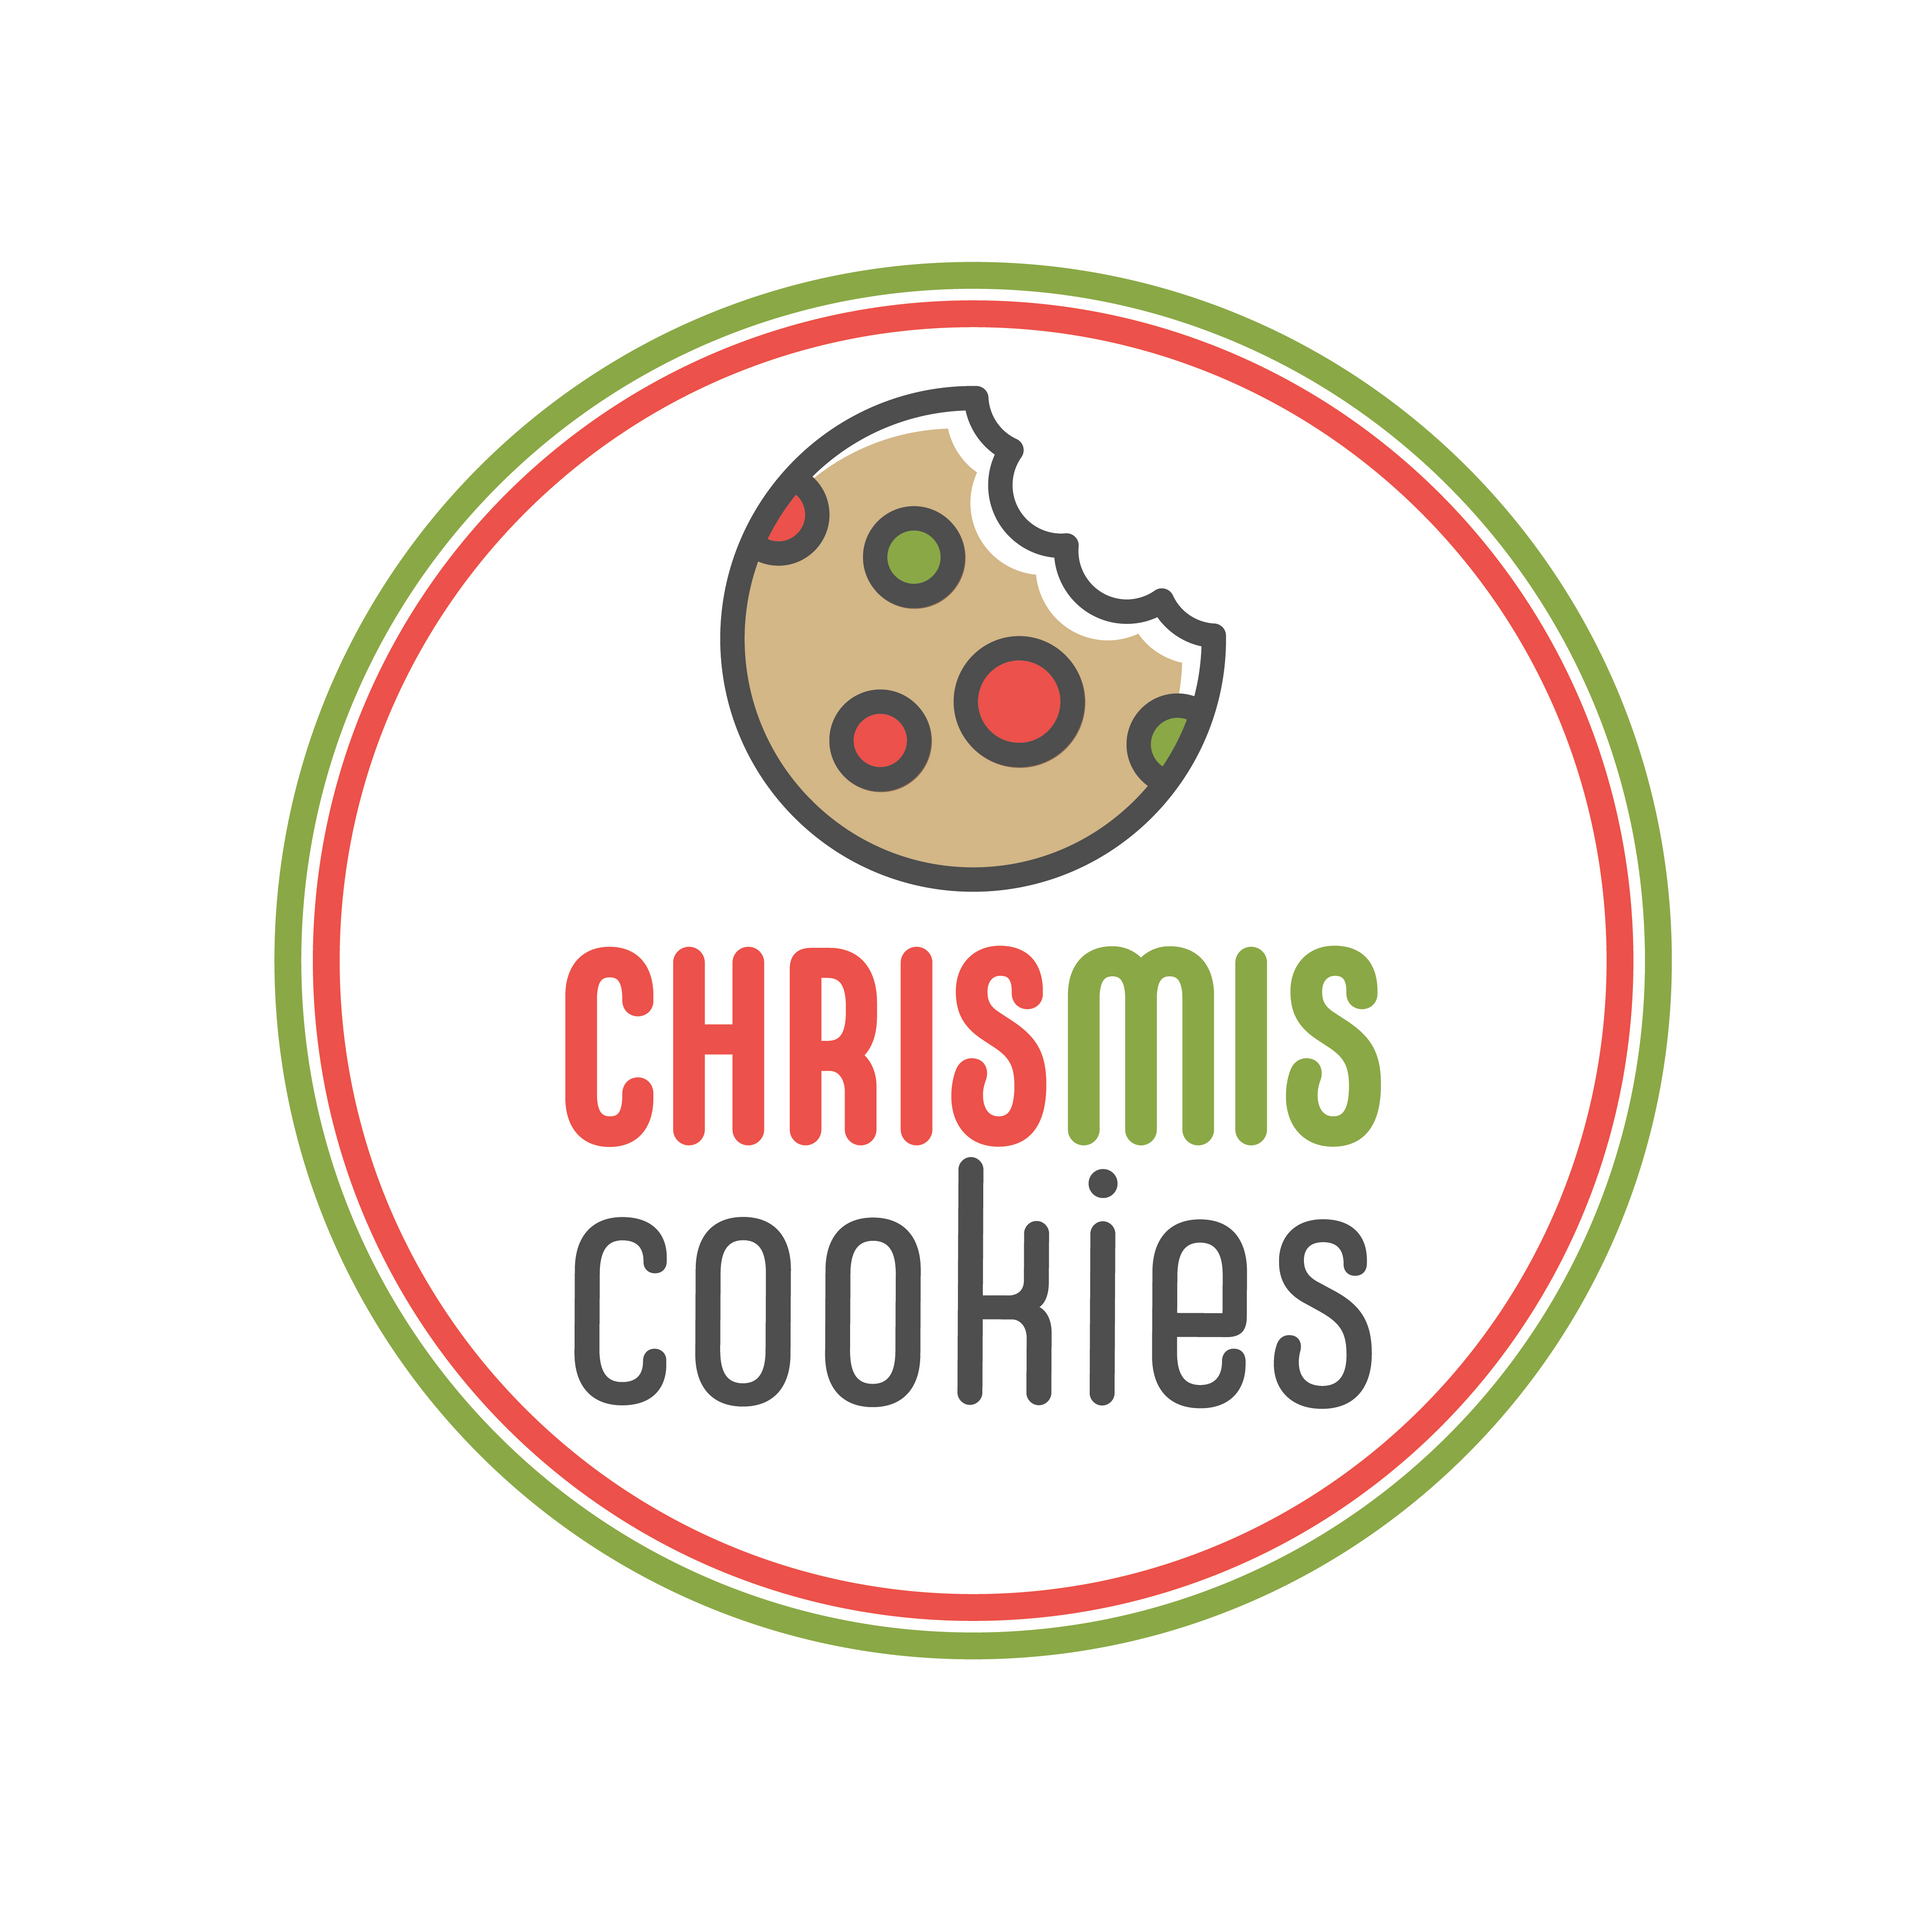 ChrisMis Cookies - sticker